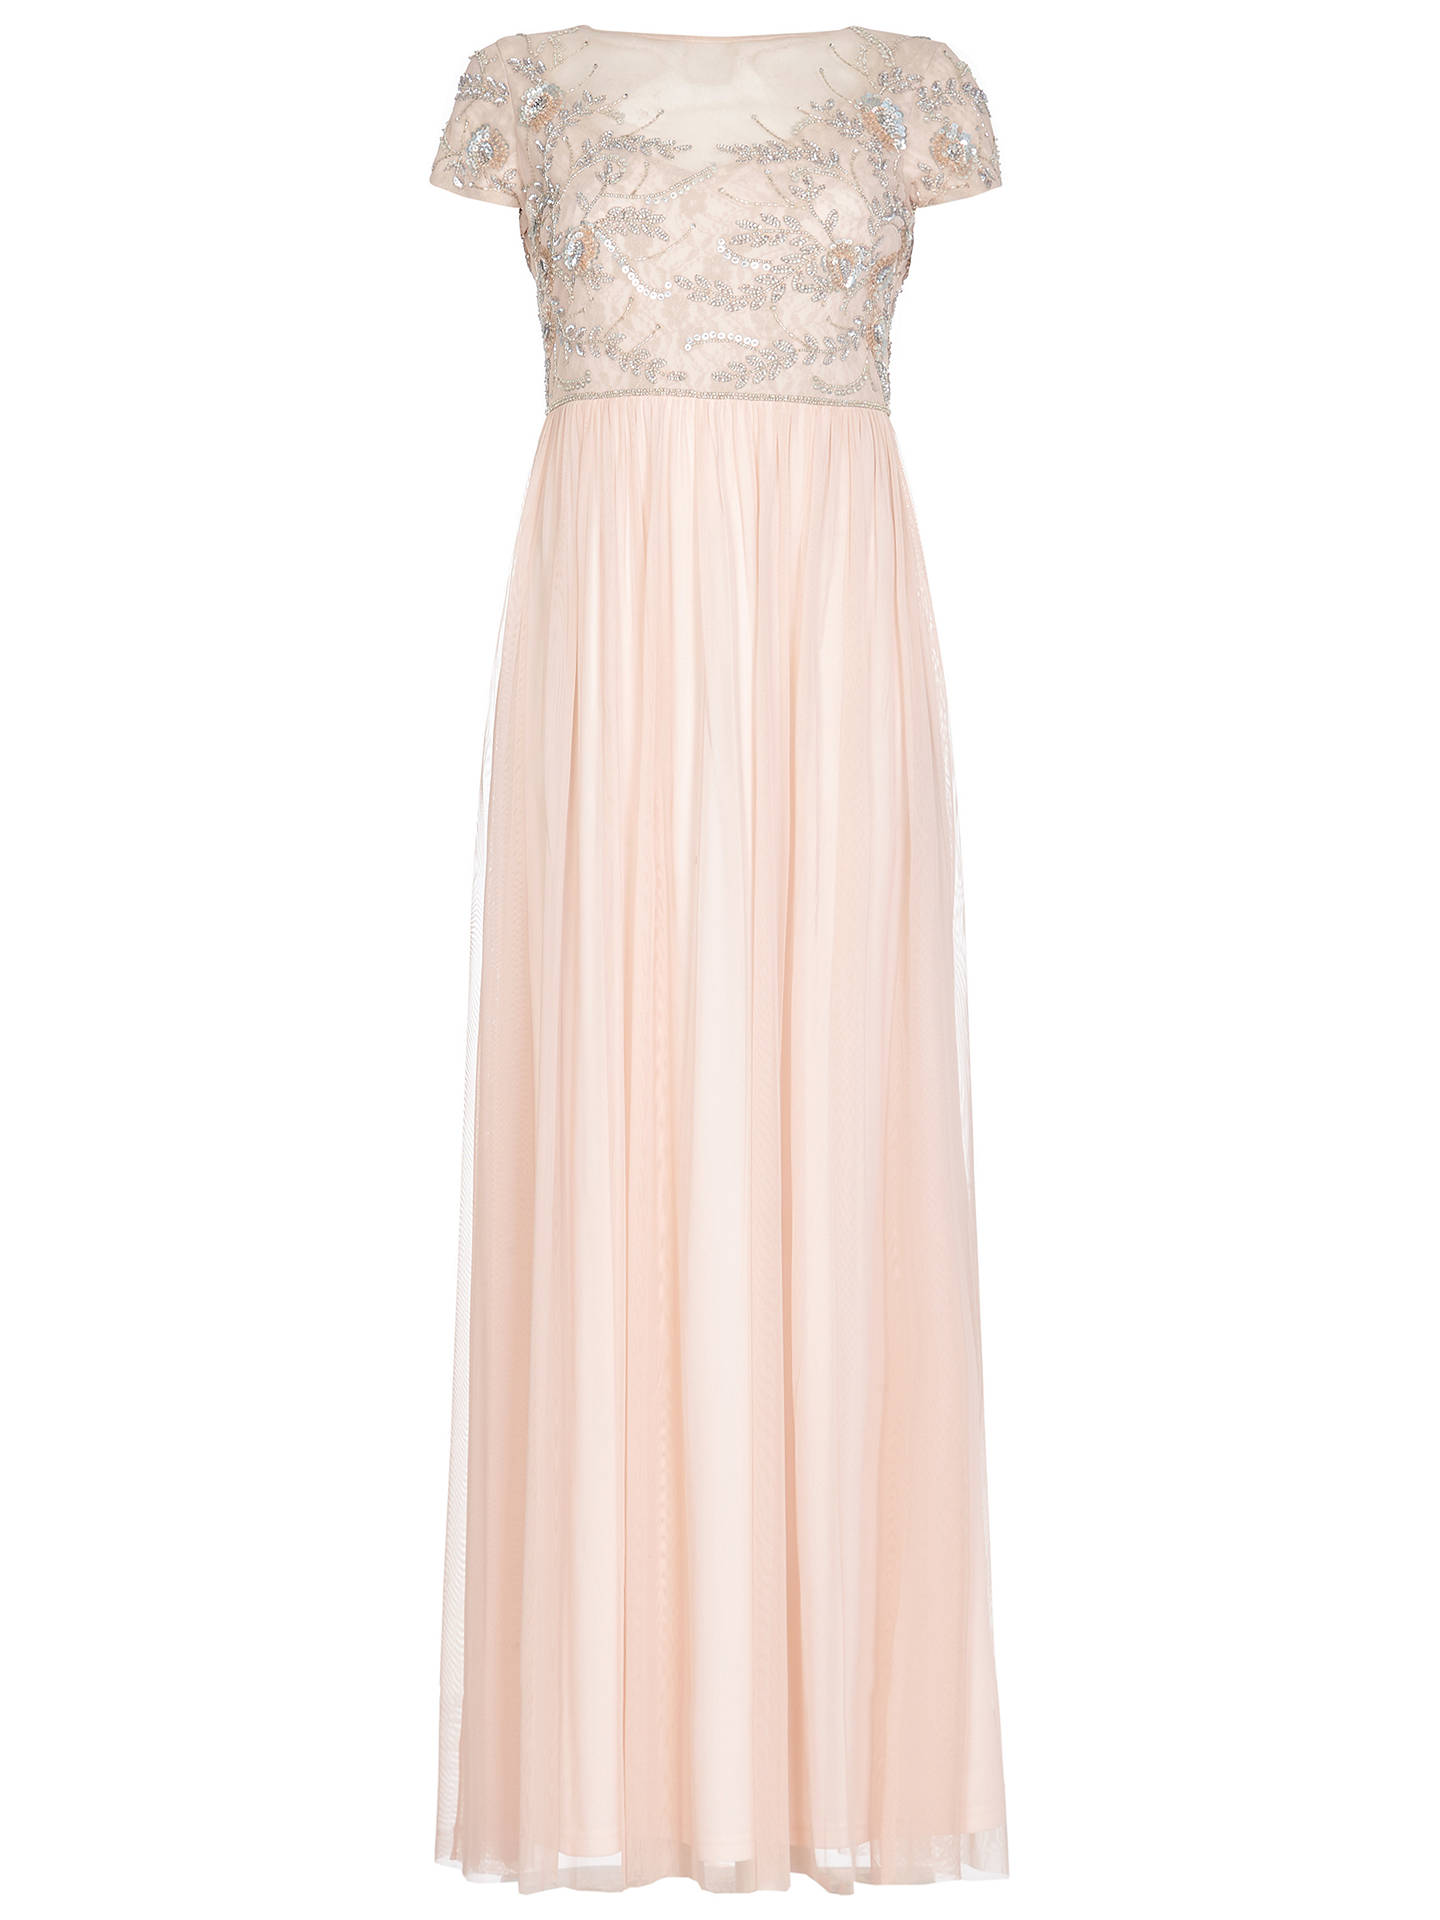 Buy Adrianna Papell Beaded Mesh Long Dress, Blush, 8 Online at johnlewis.com